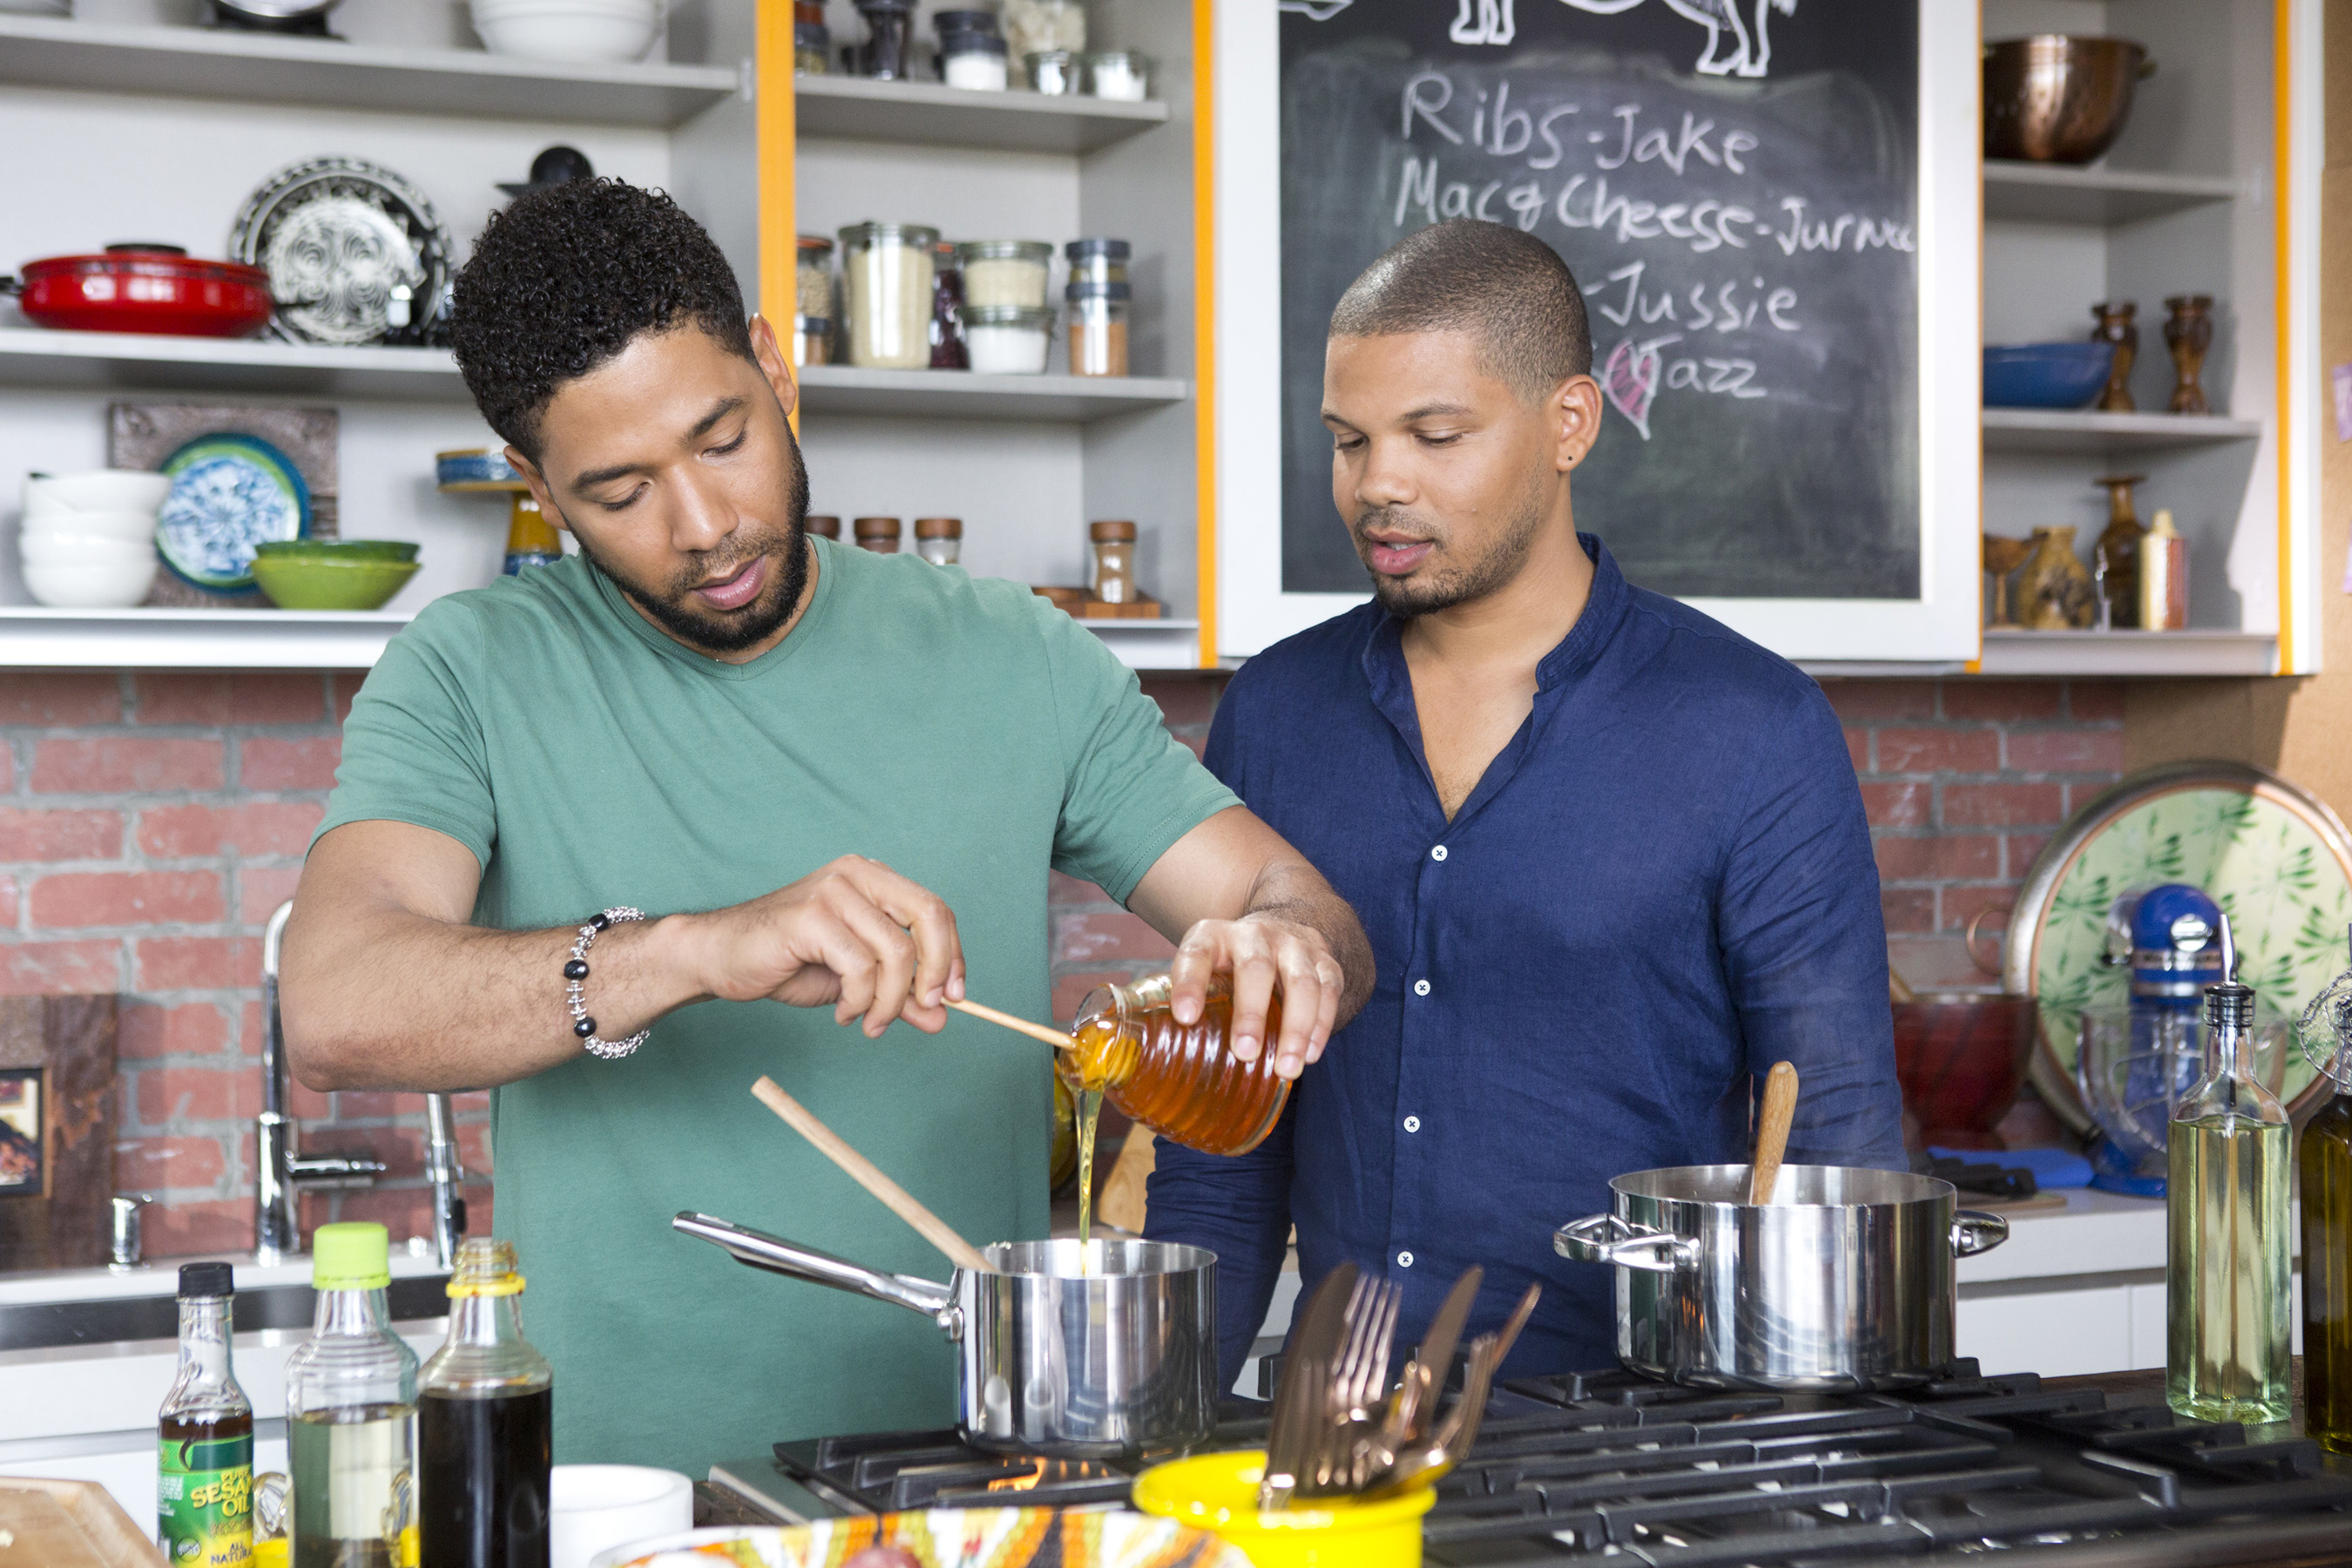 Jake helps Jussie prep his Grilled Chicken Wings with Pineapple-Ginger Teriyaki Sauce, as seen on Cooking Channel's What's Cooking With The Smollets, Season 1.